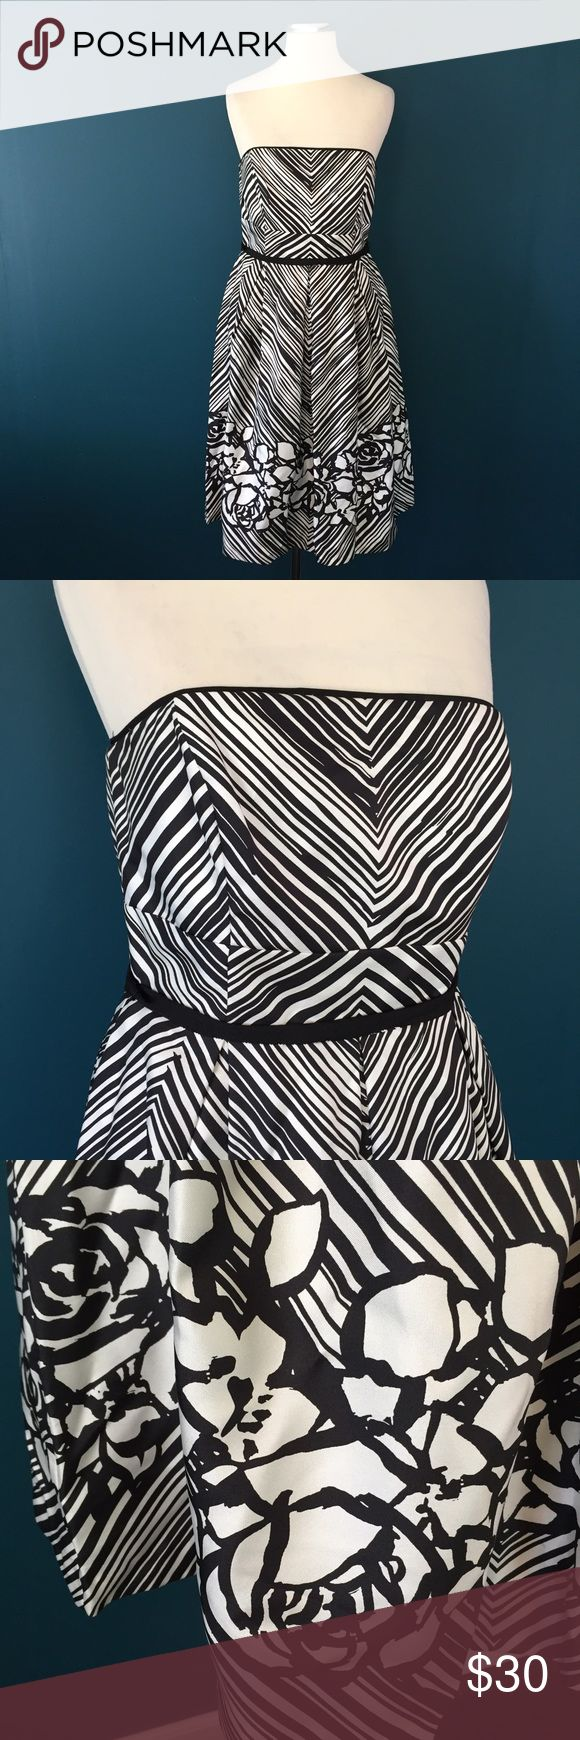 White House Black Market Silk Dress Sz 4 Worn once!  Gorgeous dress  100% silk  Back zip Lined  Boning in bust for support  Black ribbon belt Adhesive strip along top hem to prevent slips  Measurements in inches when laid flat:  Bust: 15 Waist: 14 Hips: 20 Length from under arm to hem: 29 White House Black Market Dresses Strapless